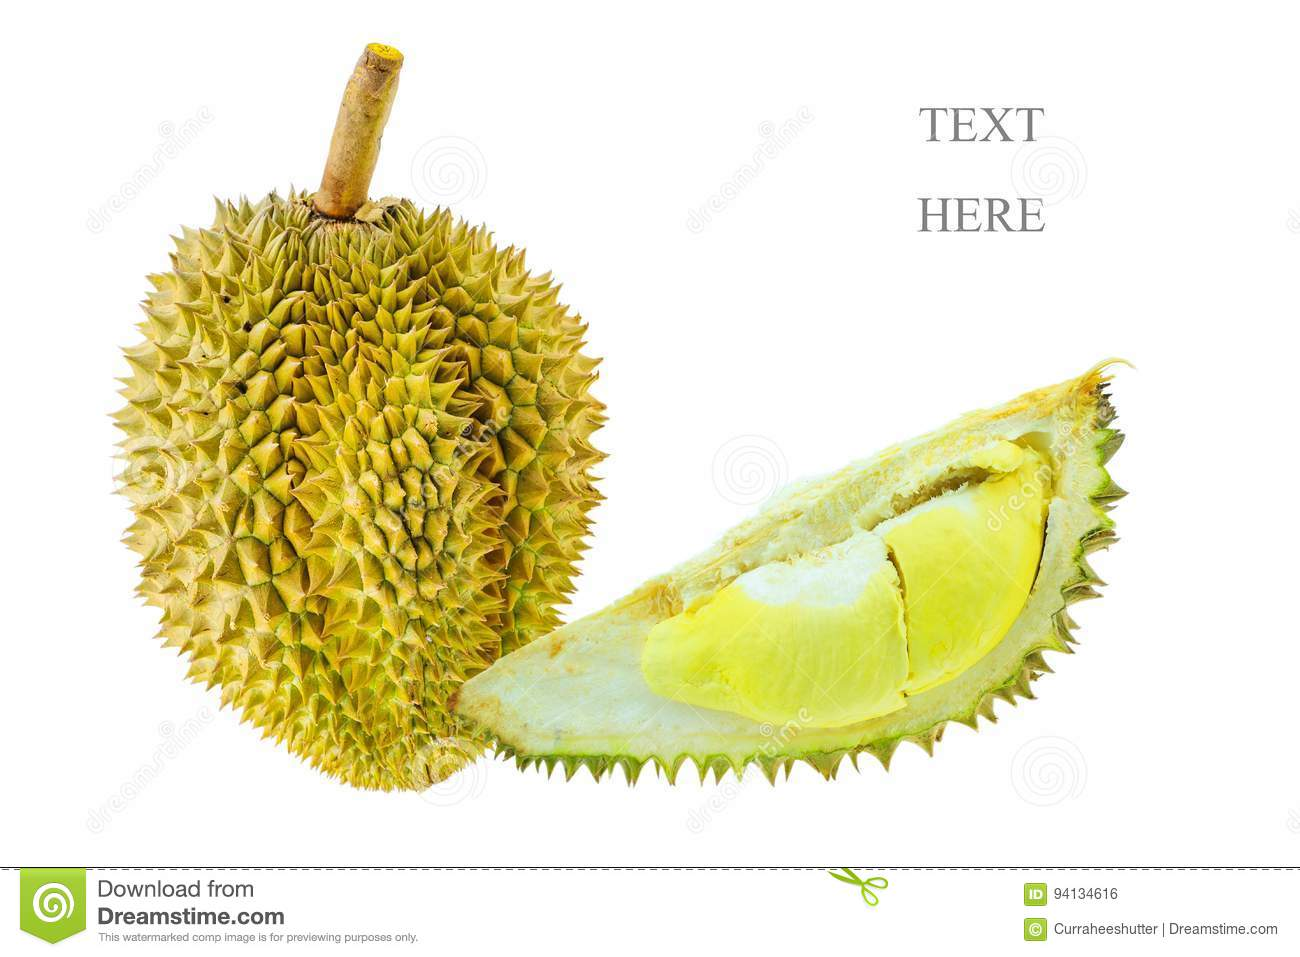 4f7674fdea6 King of fruit is durian and so smell. some people favorite durian some  people unfavorite due to smell. high sugar and calorie.